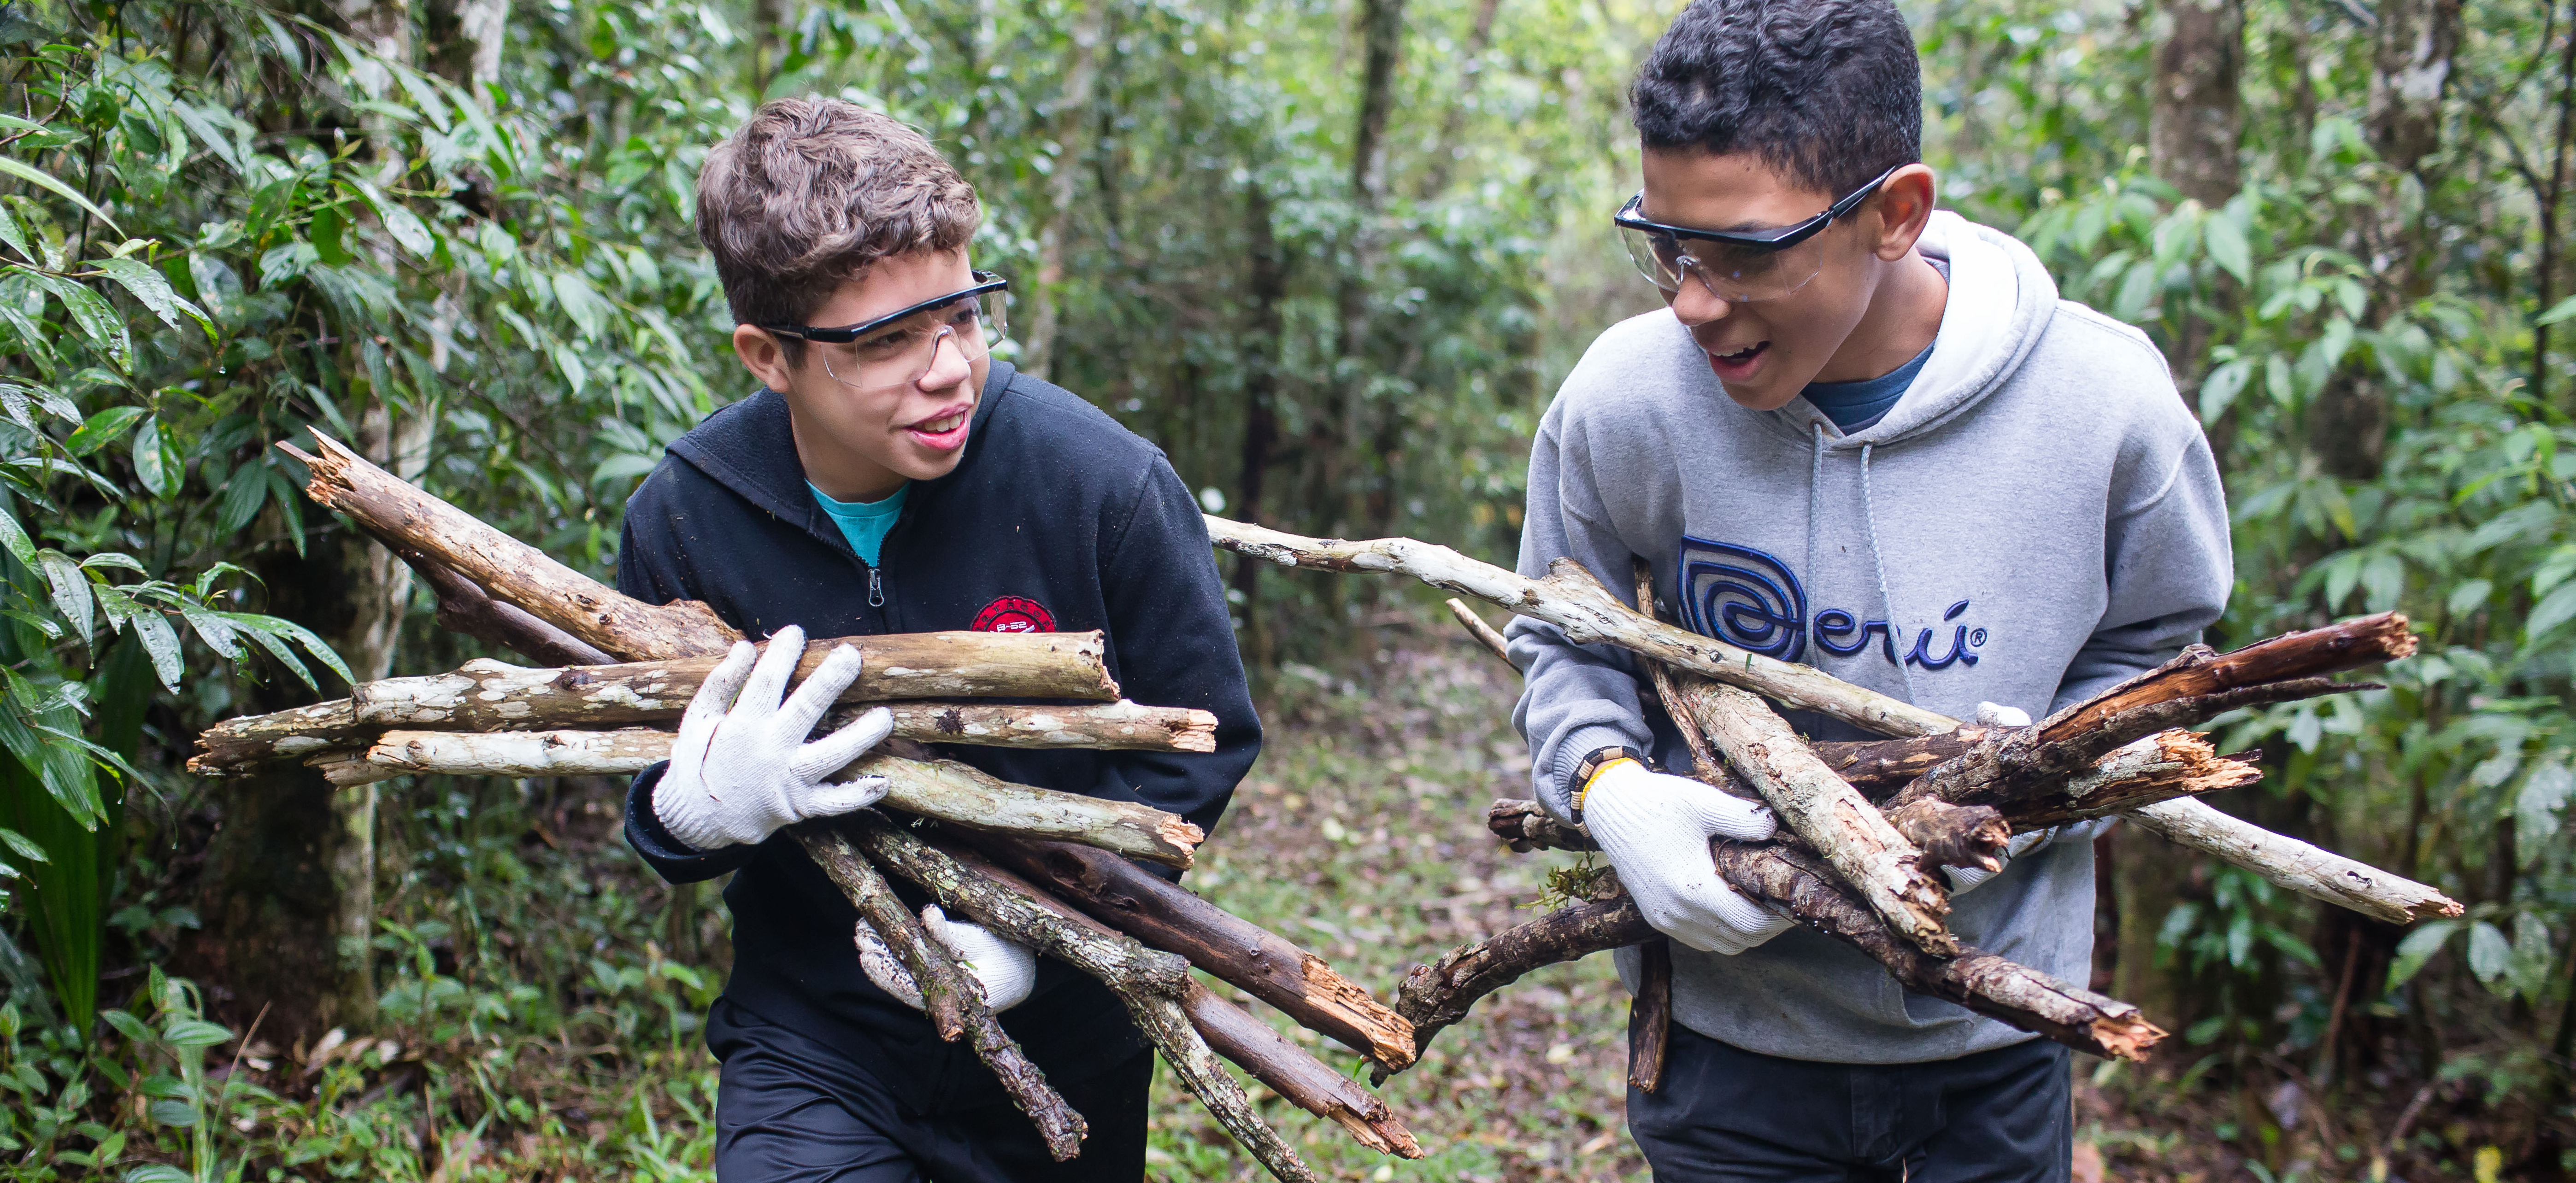 Young men carry sticks during a camping trip. A new camp guide for Aaronic Priesthood quorums has been released.